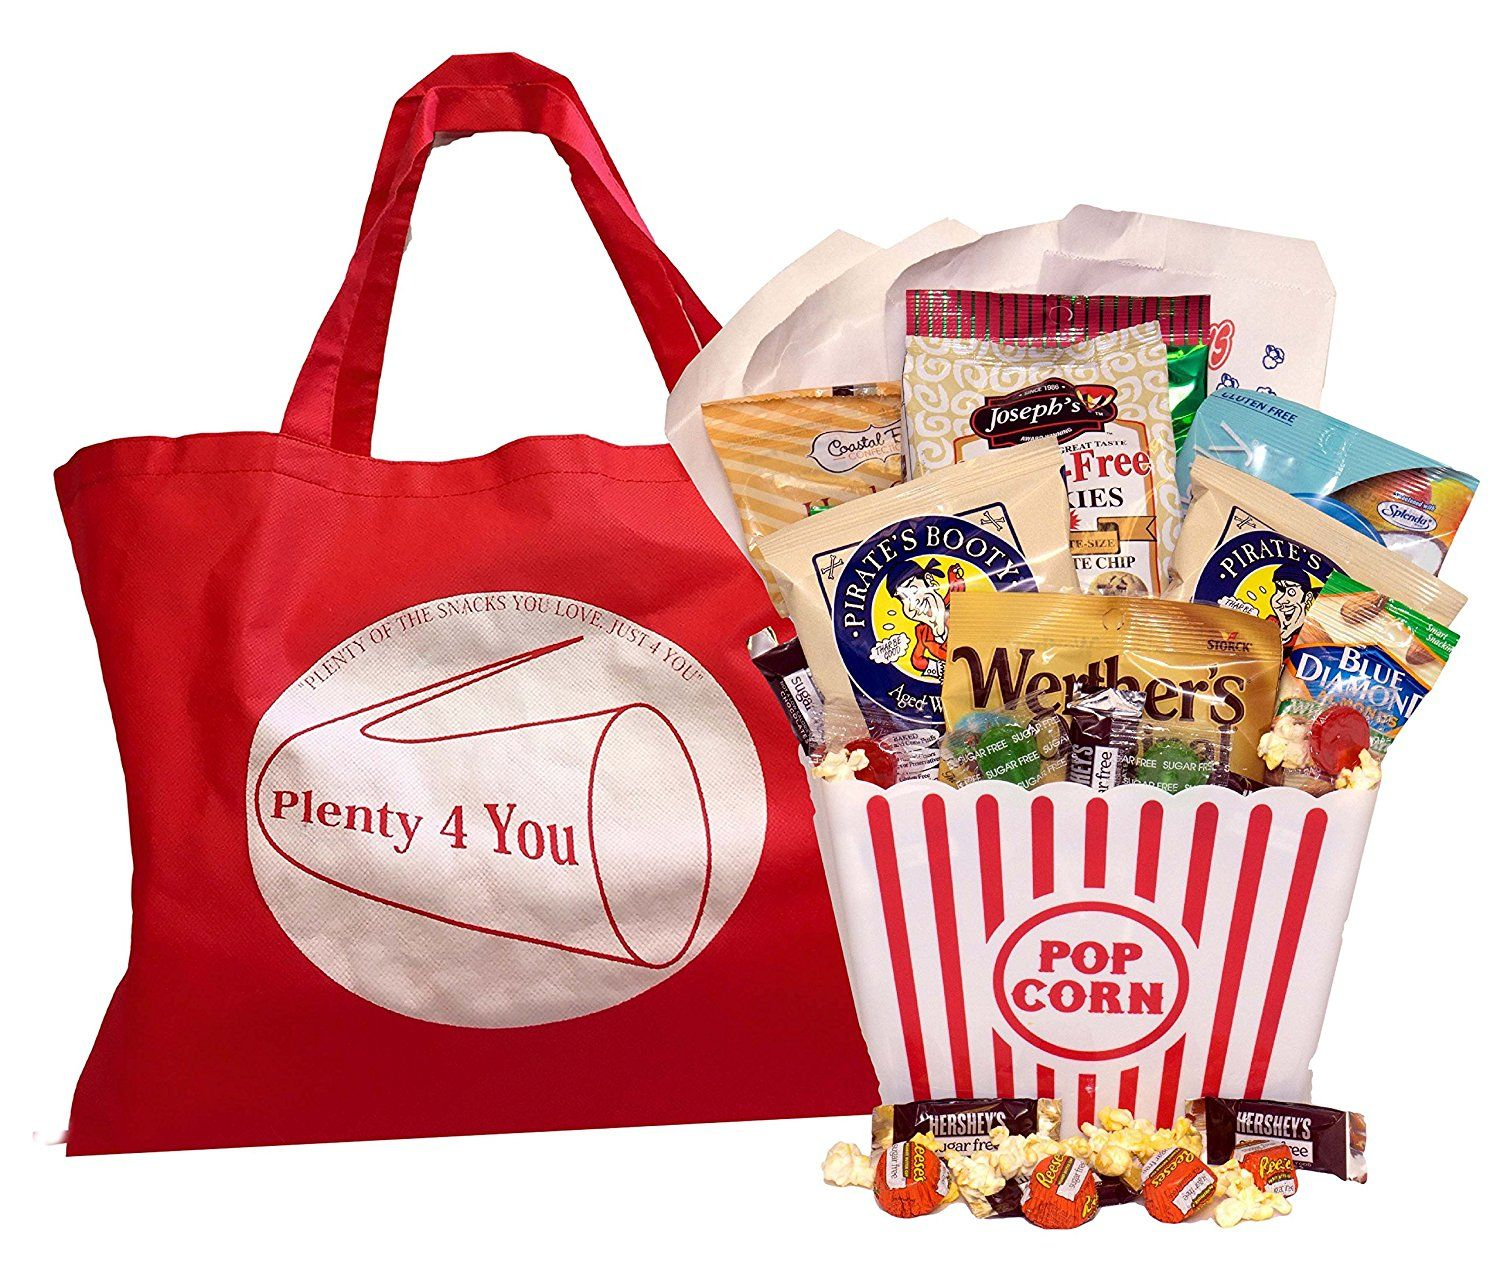 Plenty 4 you ultimate sugar free guilt free movie night gift plenty 4 you ultimate sugar free guilt free movie night gift bucket negle Gallery